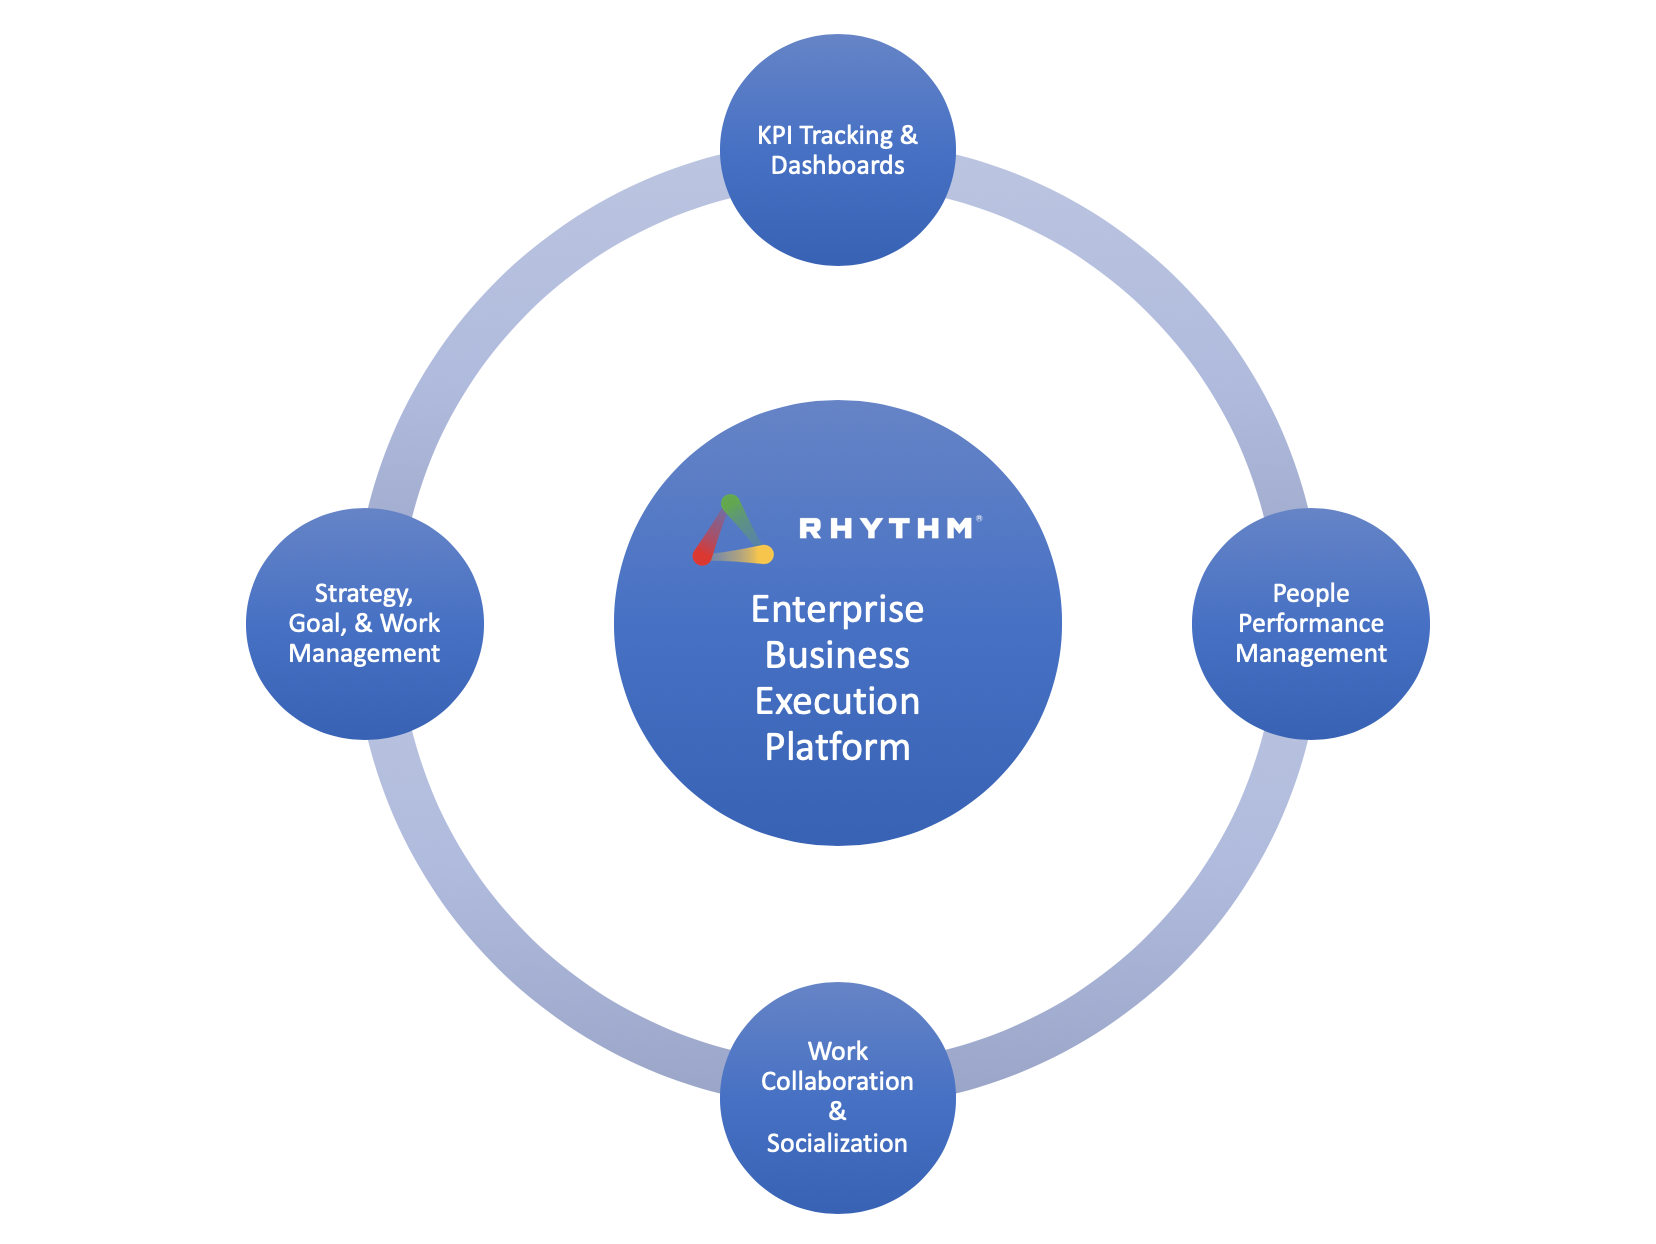 RhythmBusinessExecutionPlatform